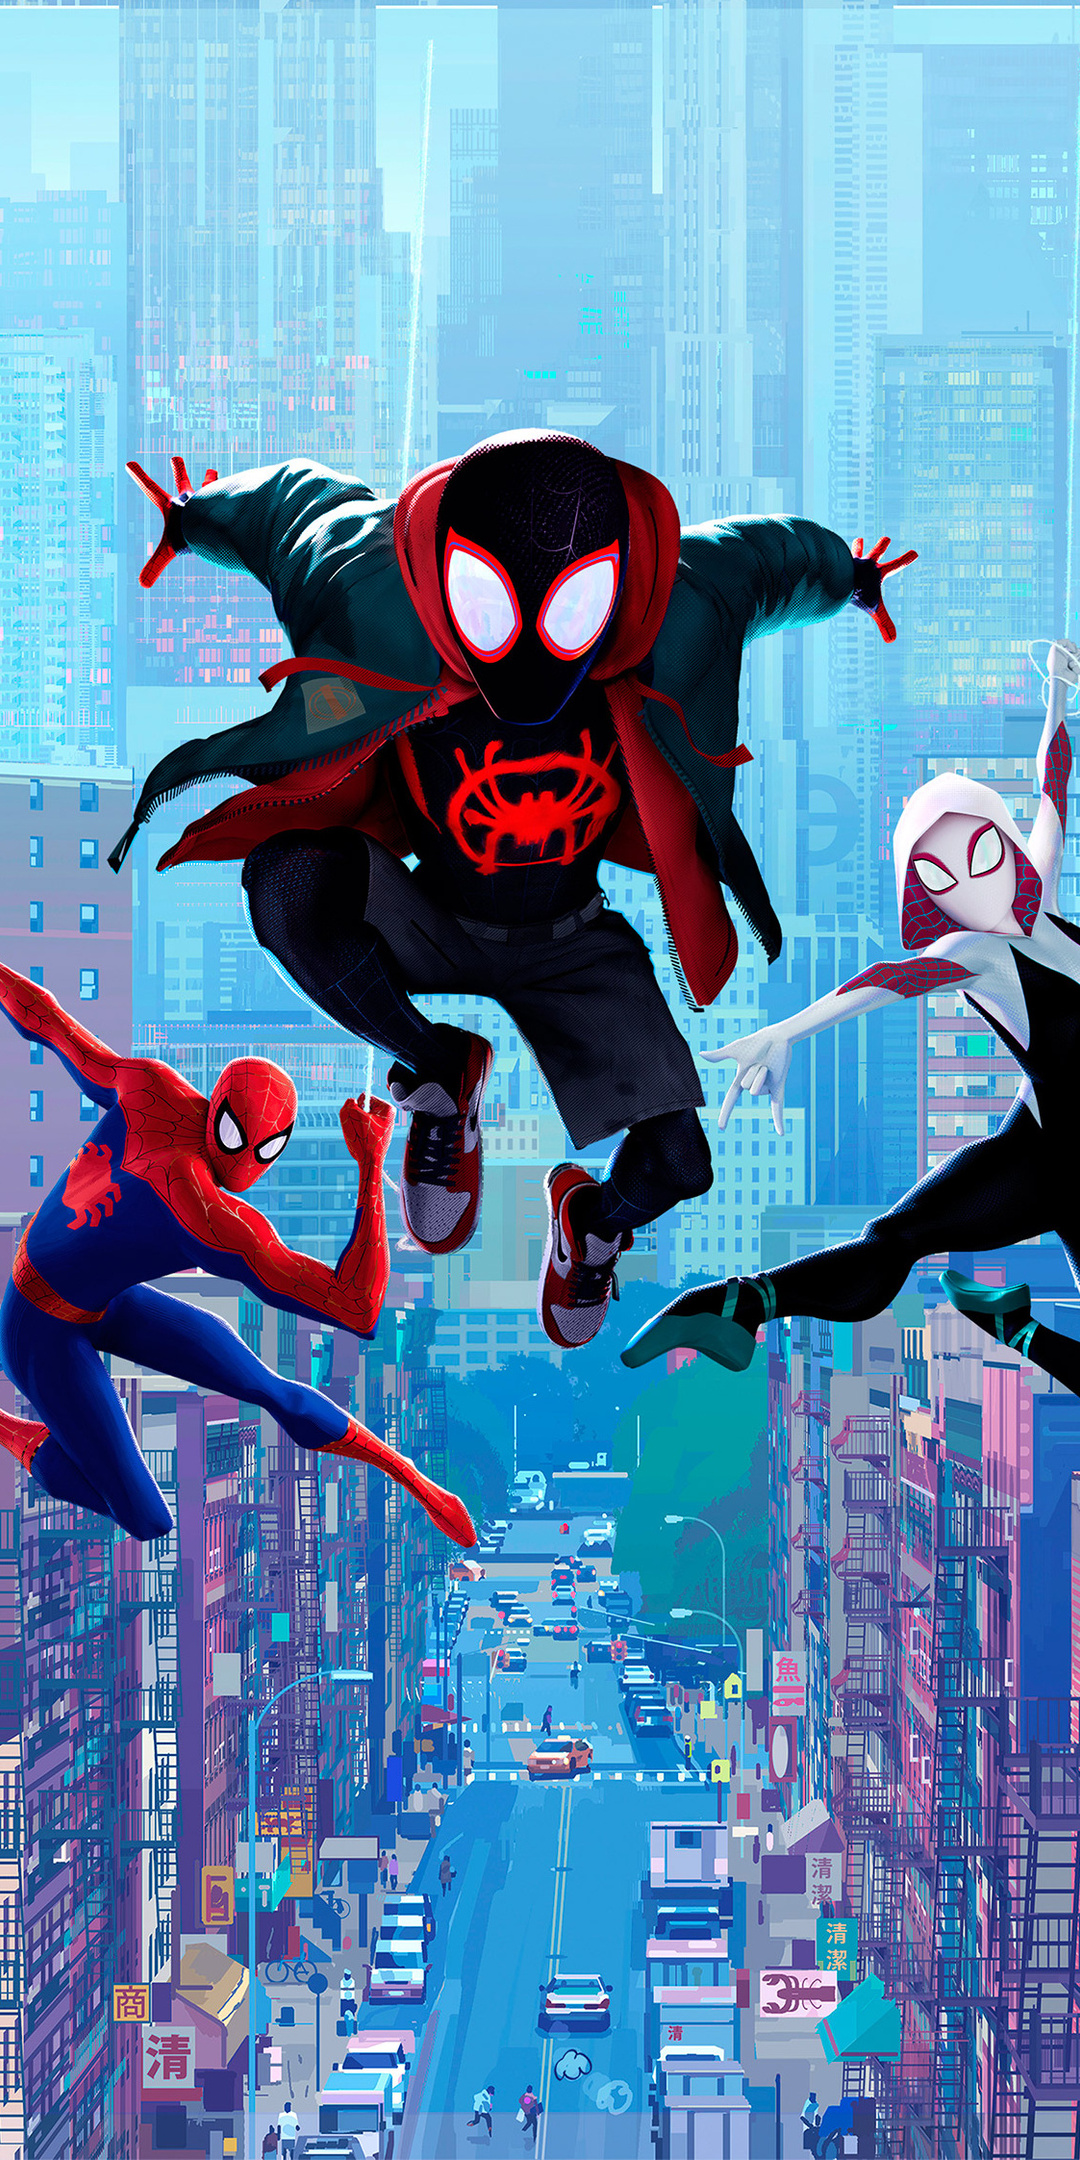 spiderman-into-spider-verse-5k-7b.jpg